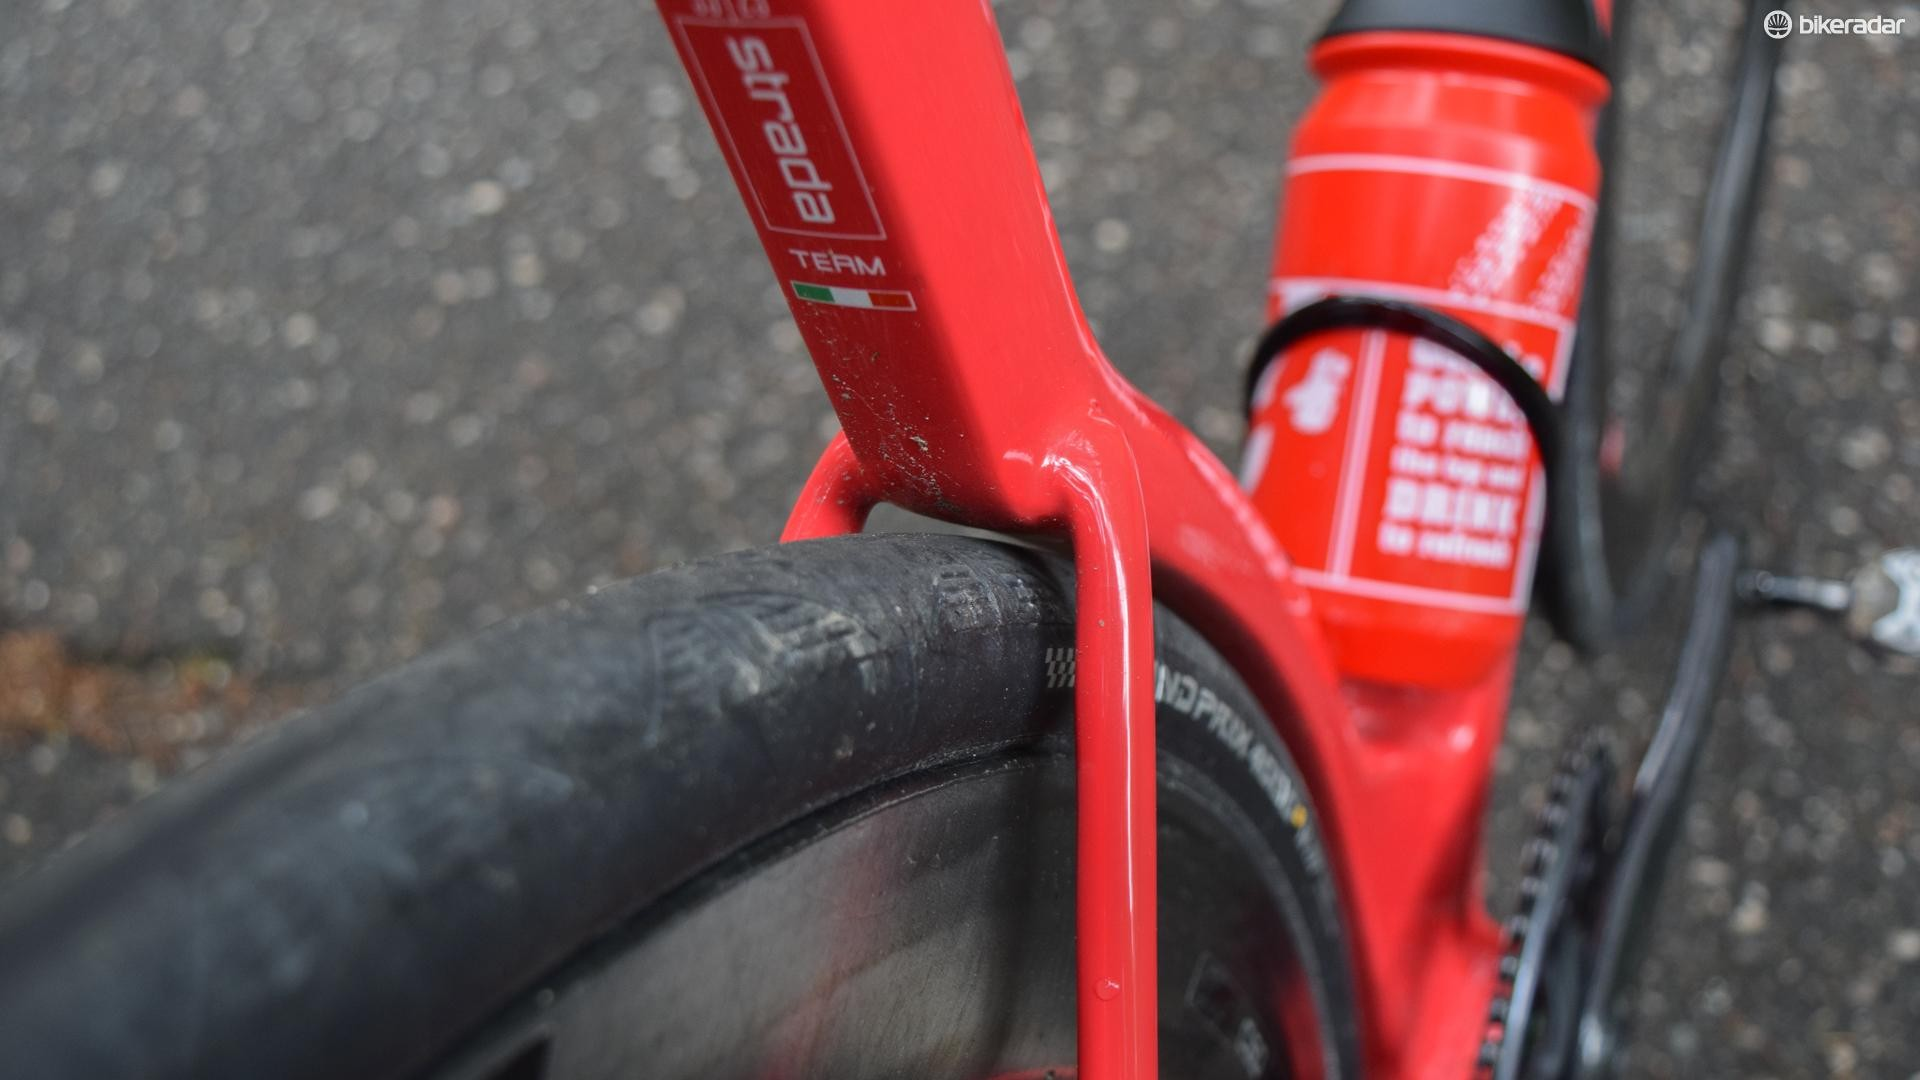 The Strada with 28mm Continental Grand Prix clinchers